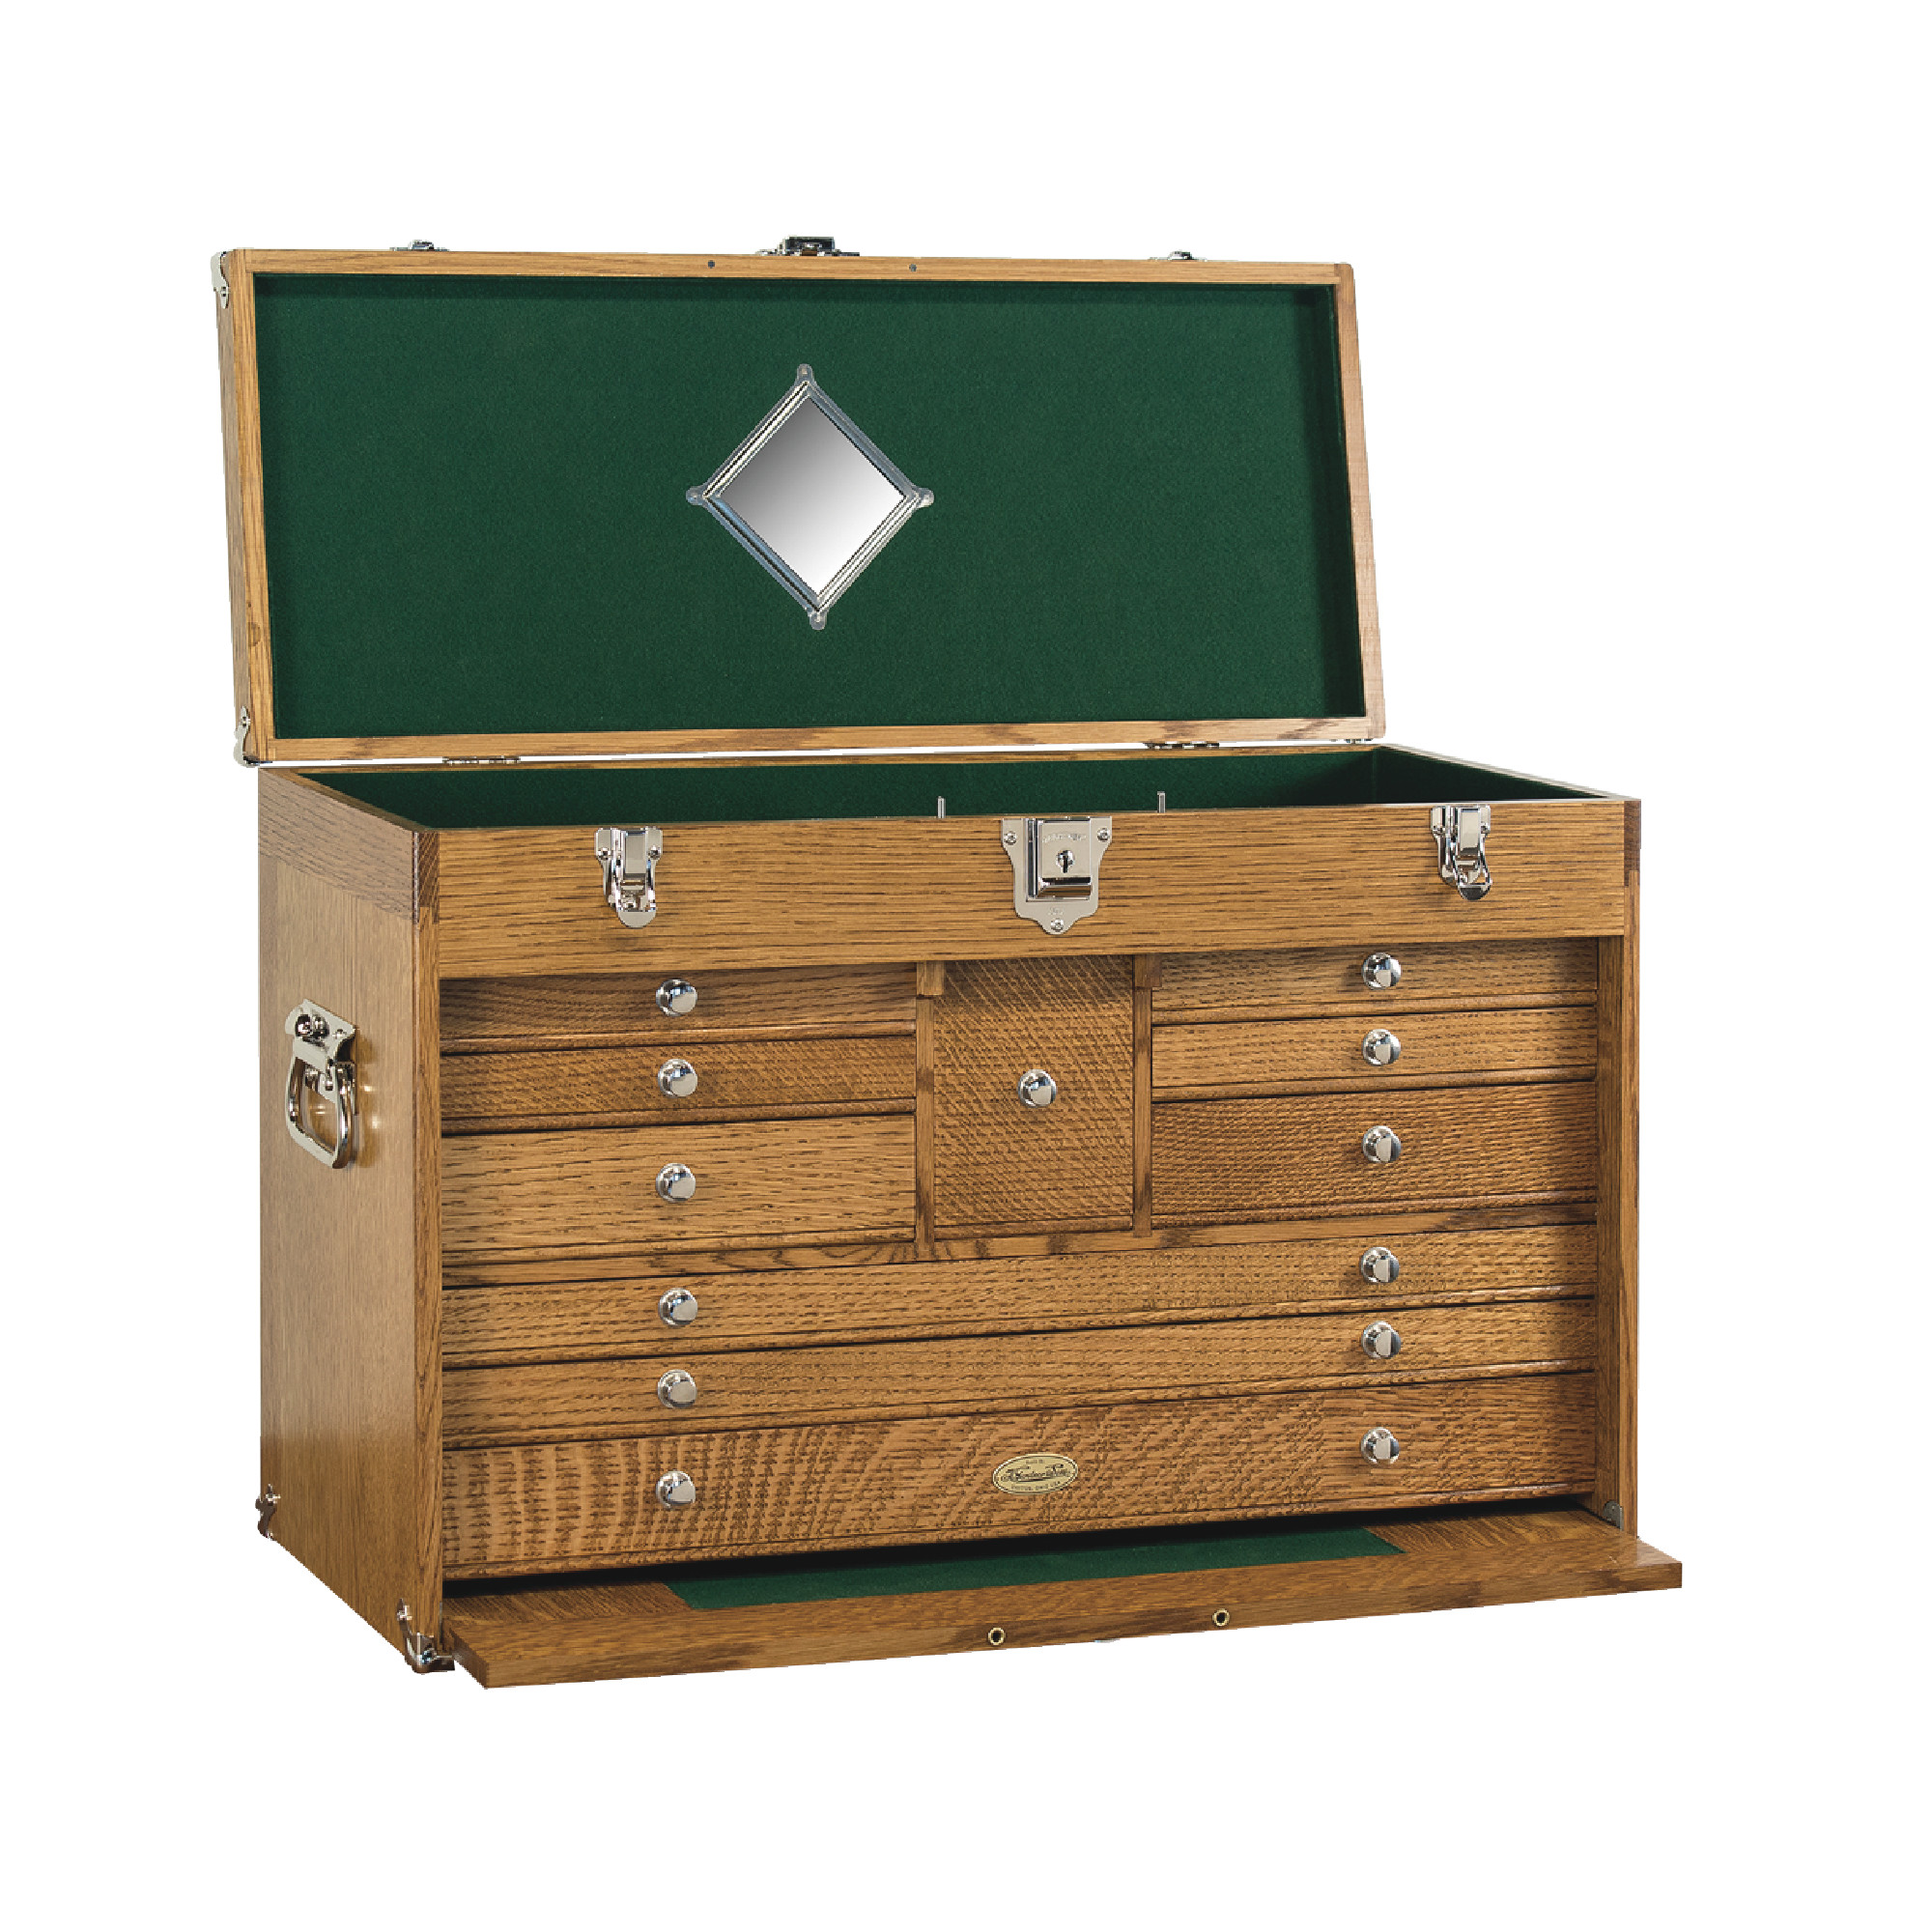 10-Drawer Heritage Series Top Chest